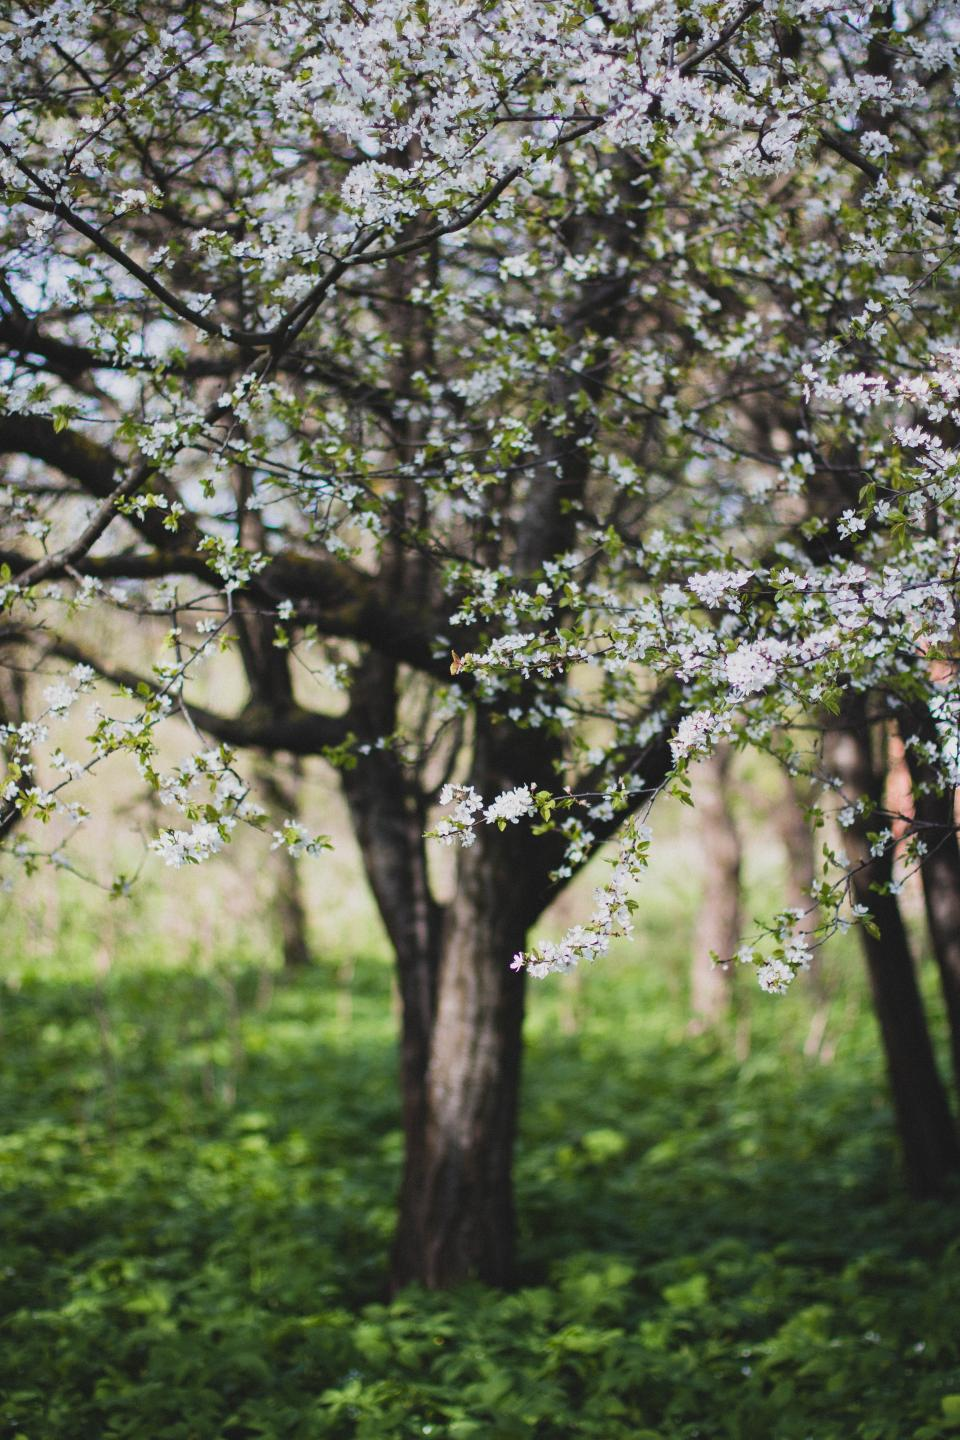 flowers nature blossoms branches stems stalk white petals trees trunks grass forest bokeh outdoors garden